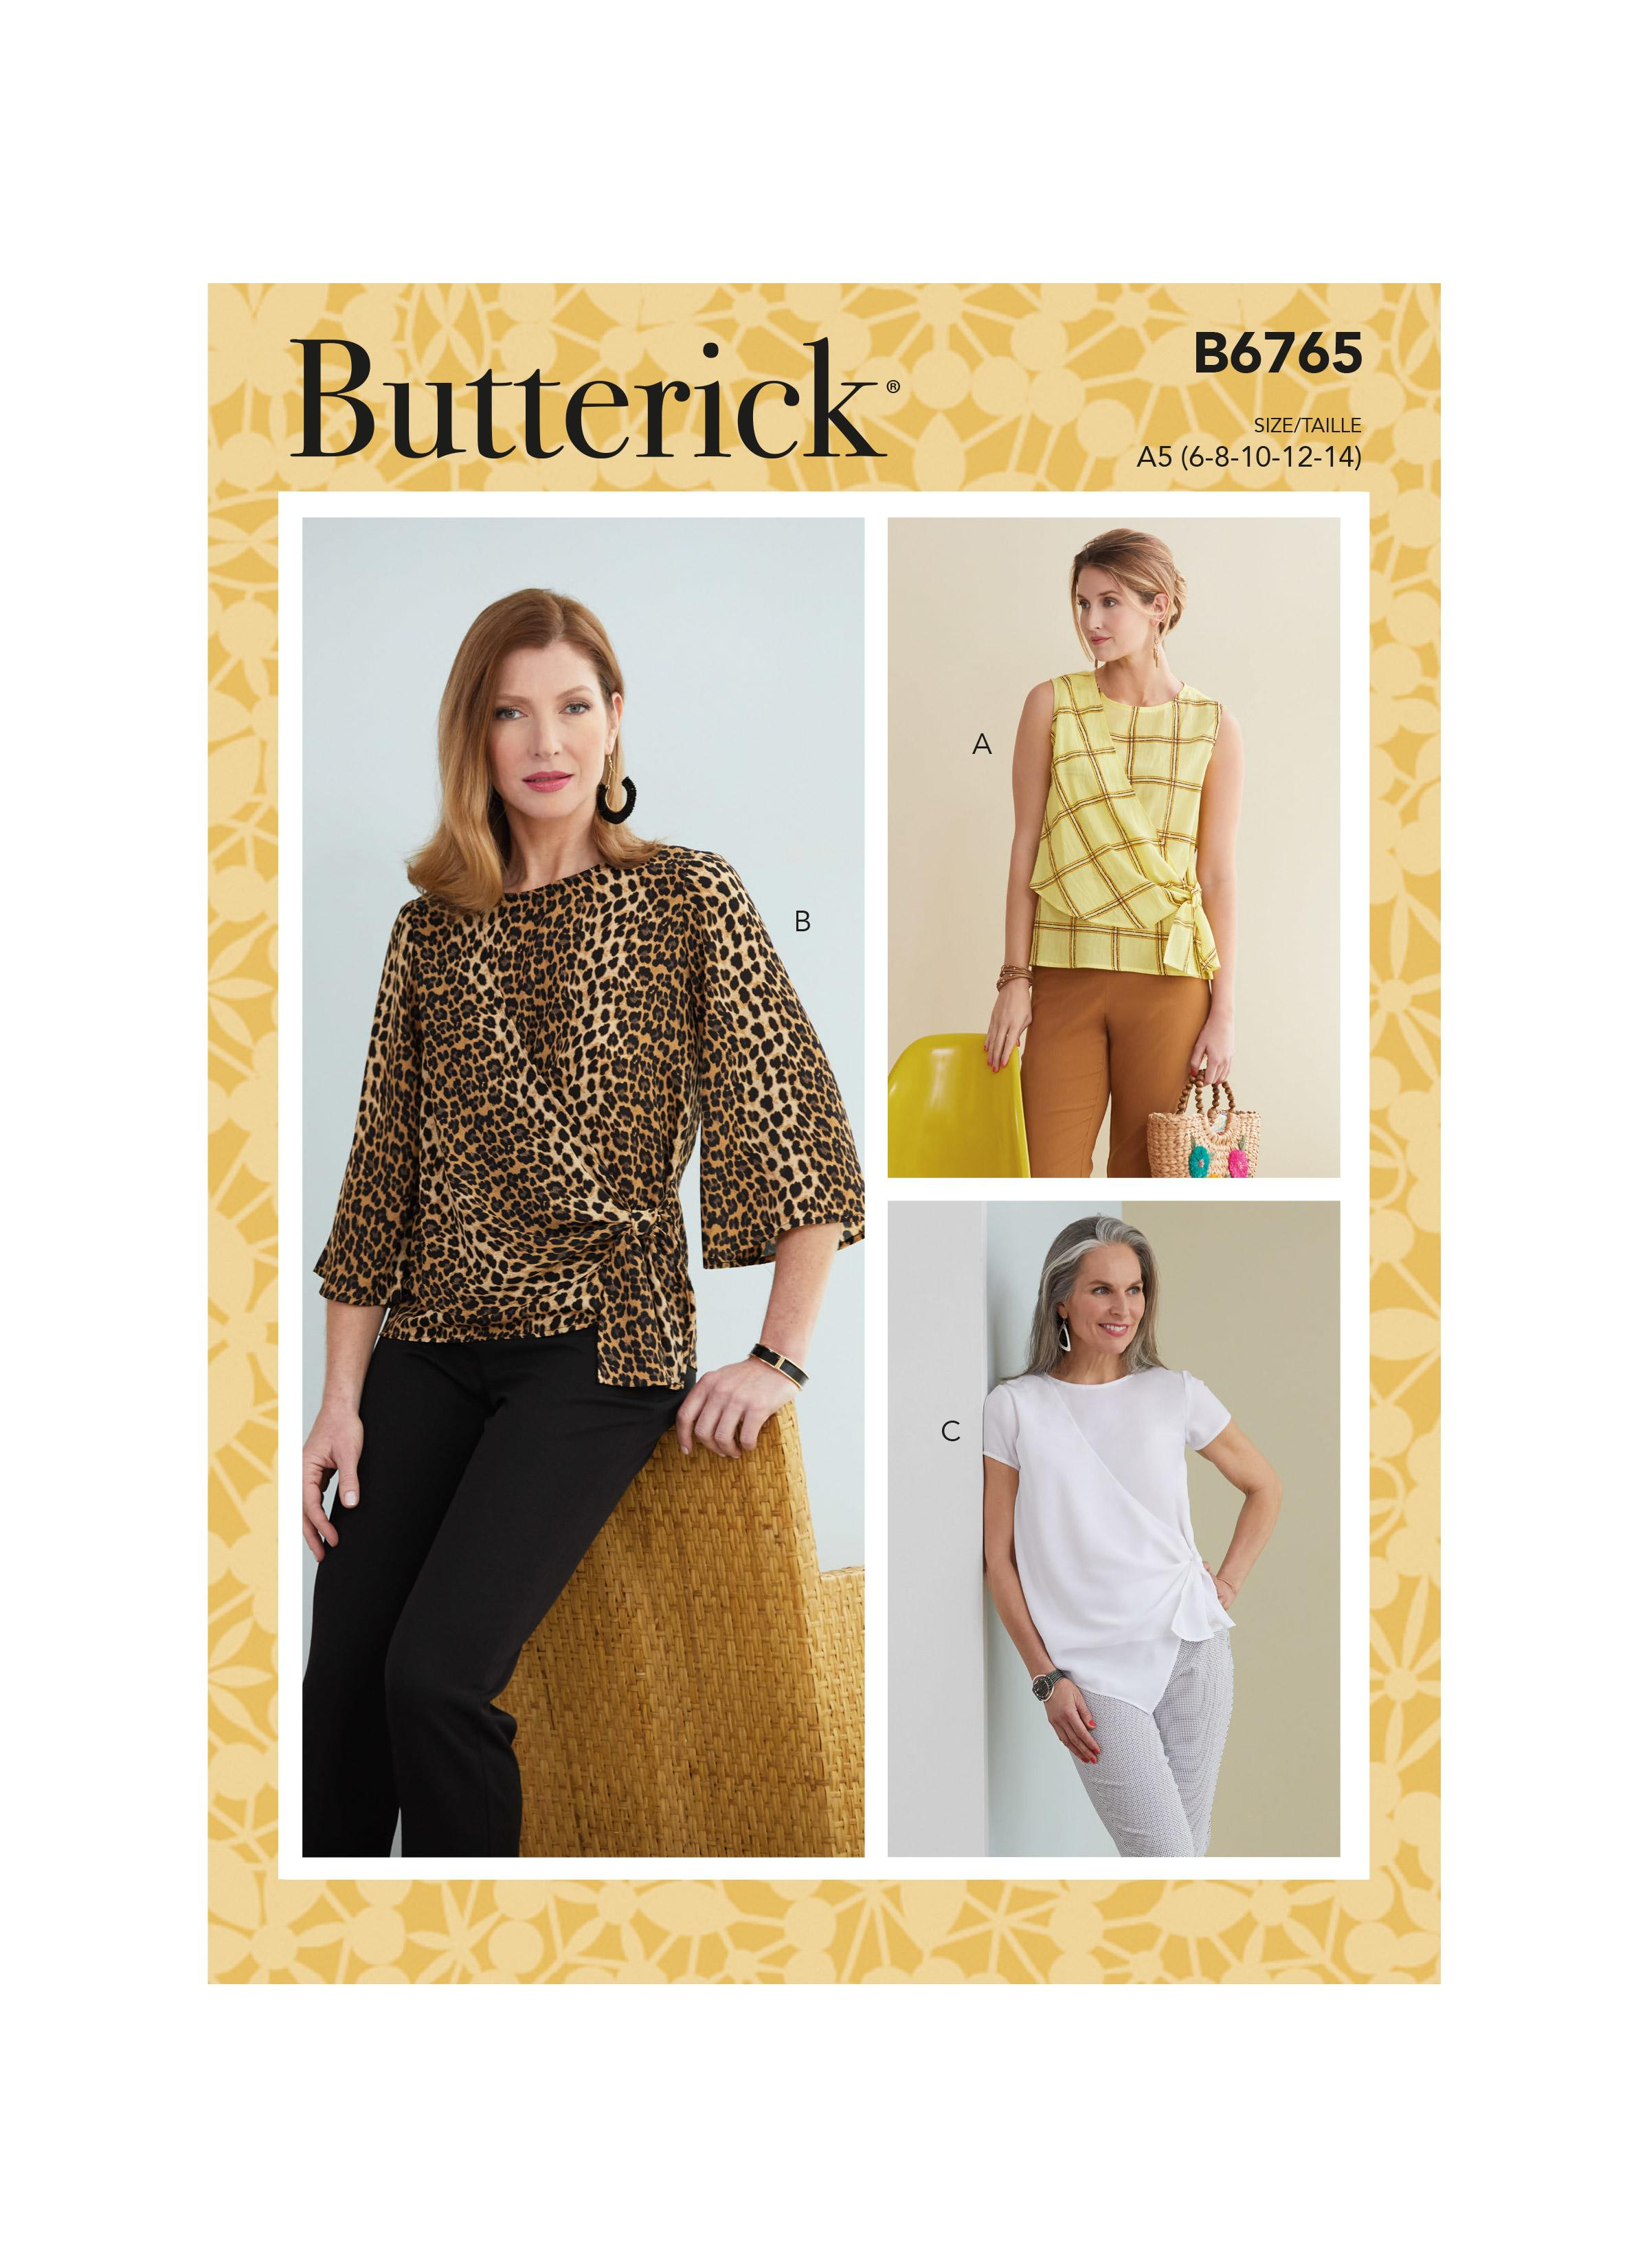 Butterick B6765 Misses' Tops